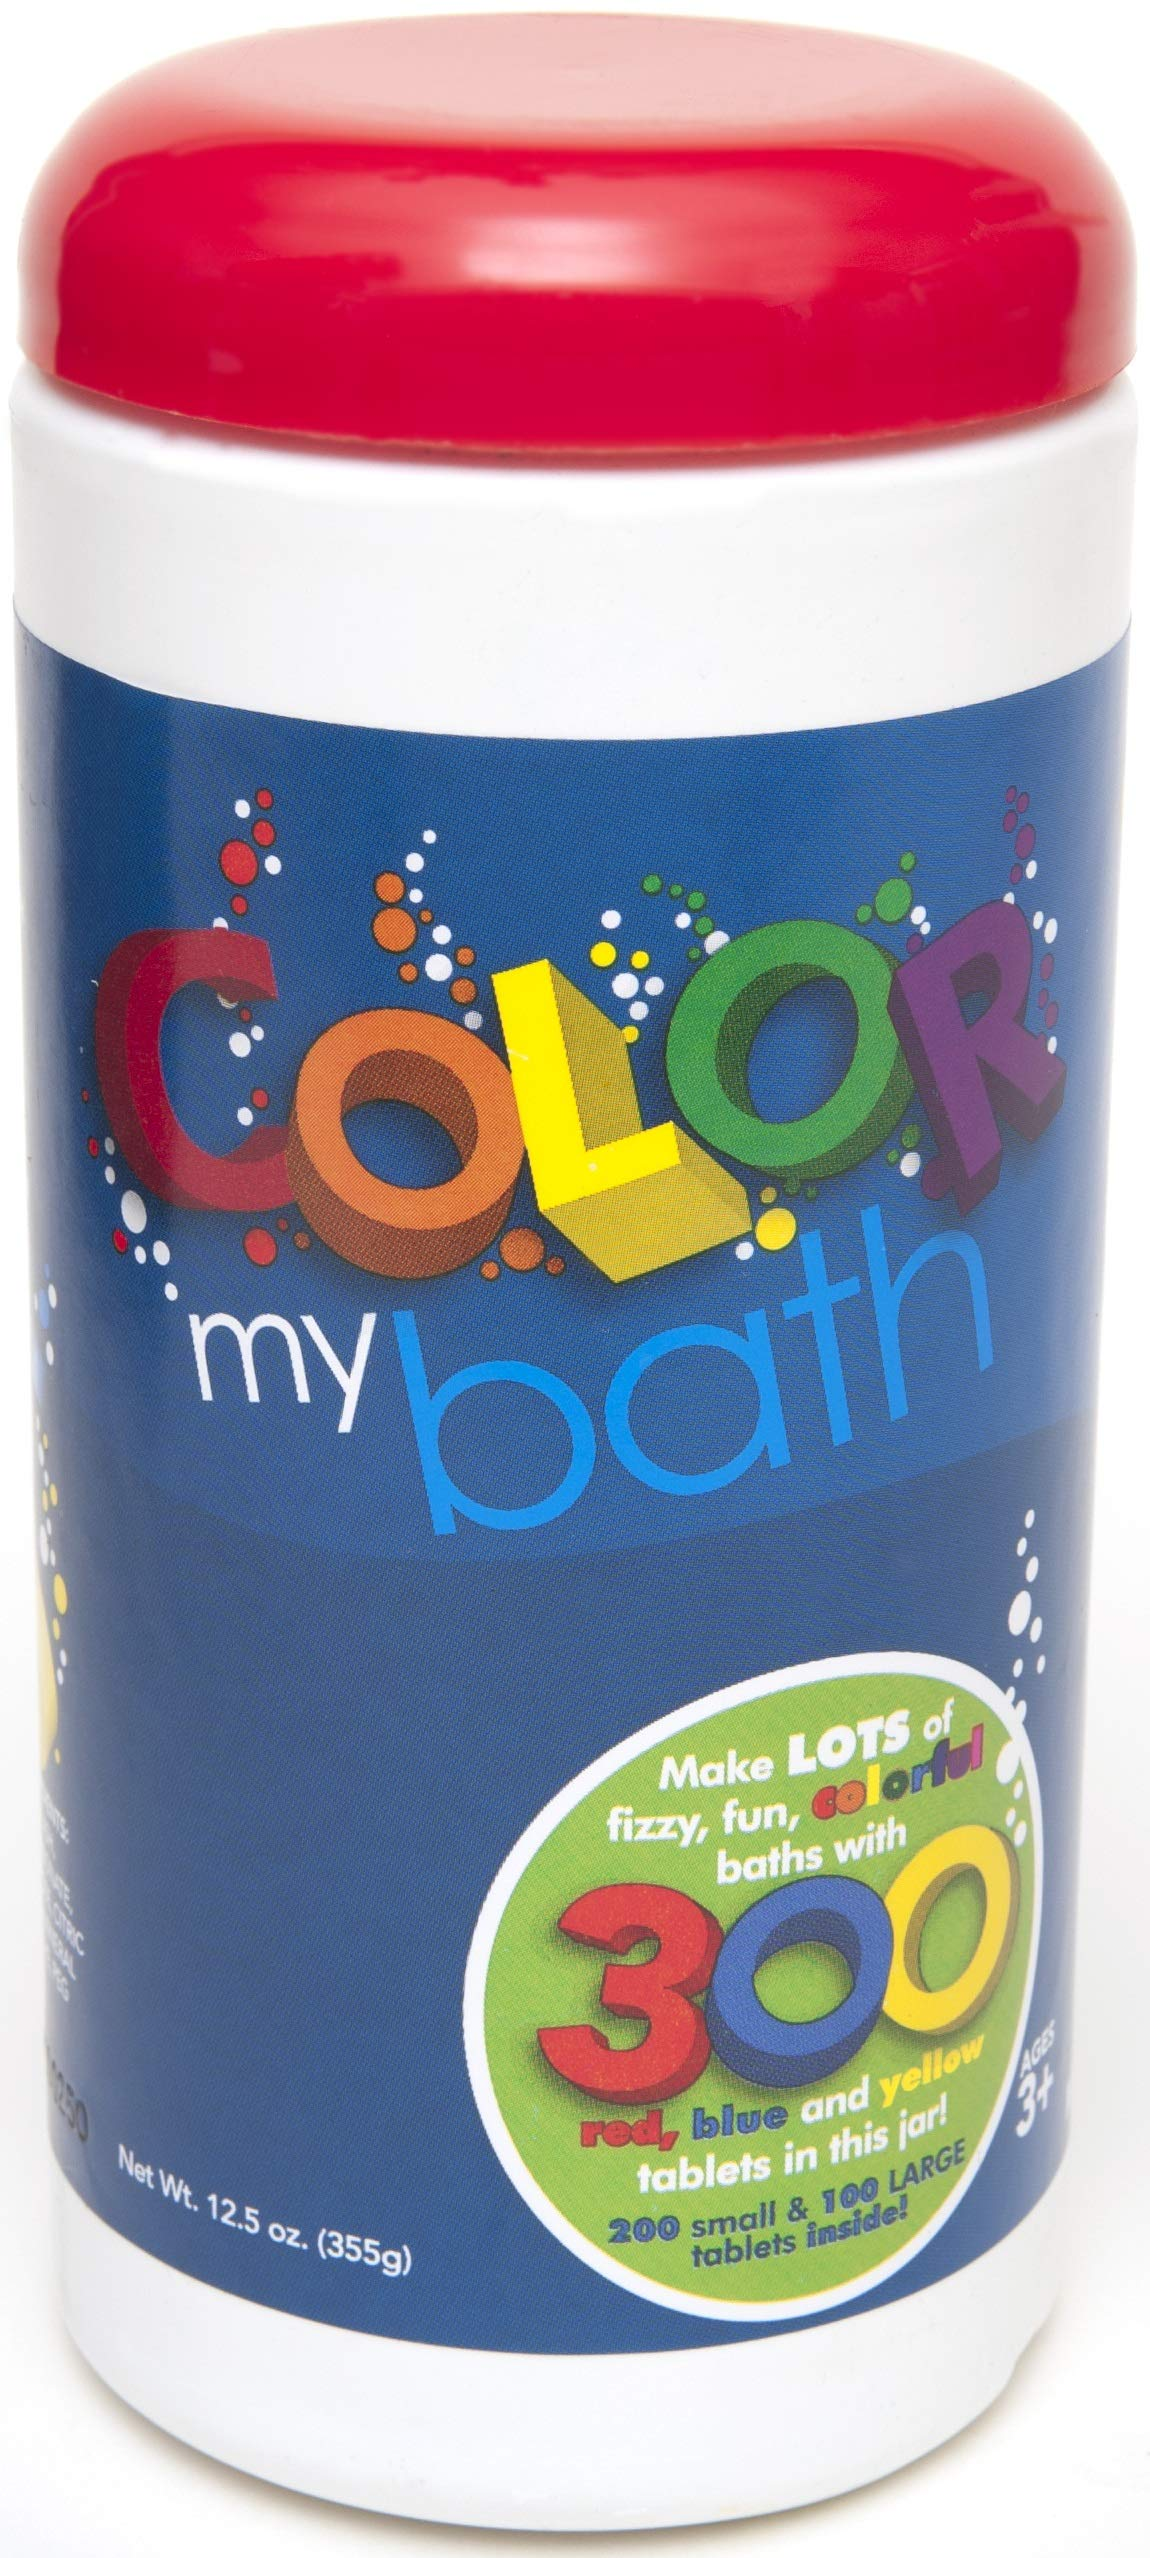 Color My Bath 133- 300 Tablet Jar - Fizzing Tub Water Primary Color Changing Tabs, Fun and Educational Bathtime Activity For Kids, Safe For Baby Non Toxic, Non Staining, Soap and Frangrance-Free Formula